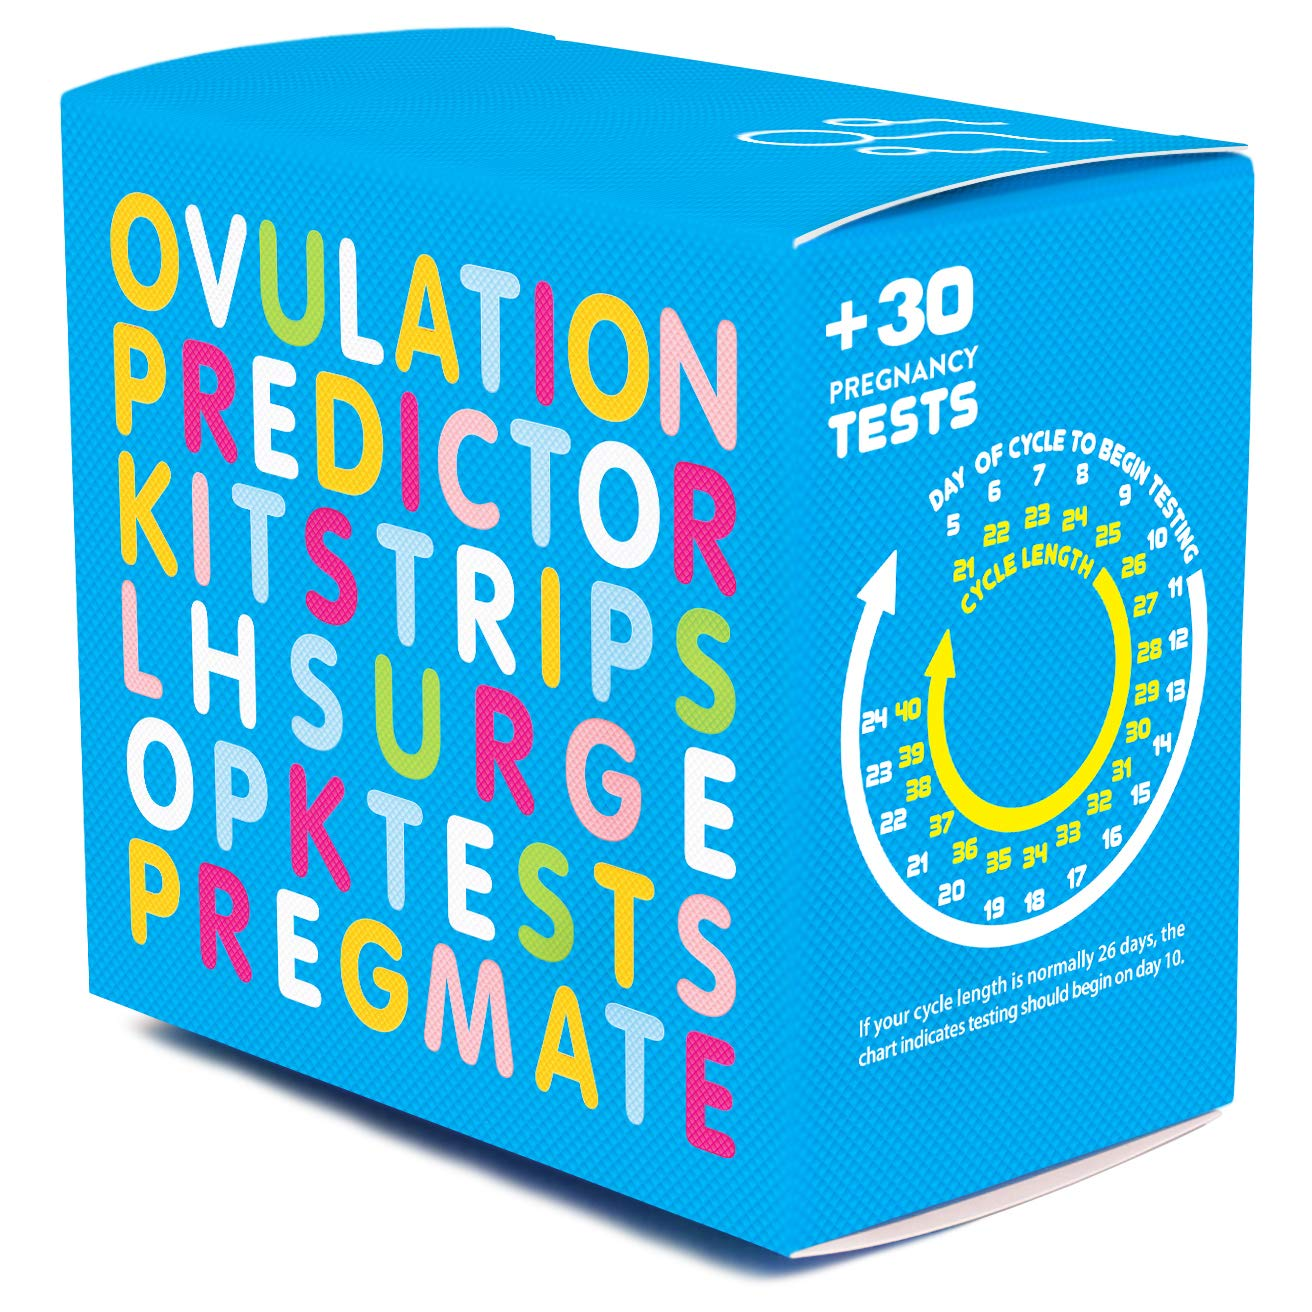 PREGMATE 60 Ovulation LH and 30 Pregnancy HCG Test Strips Predictor Kit Combo (60 LH + 30 HCG) by PREGMATE